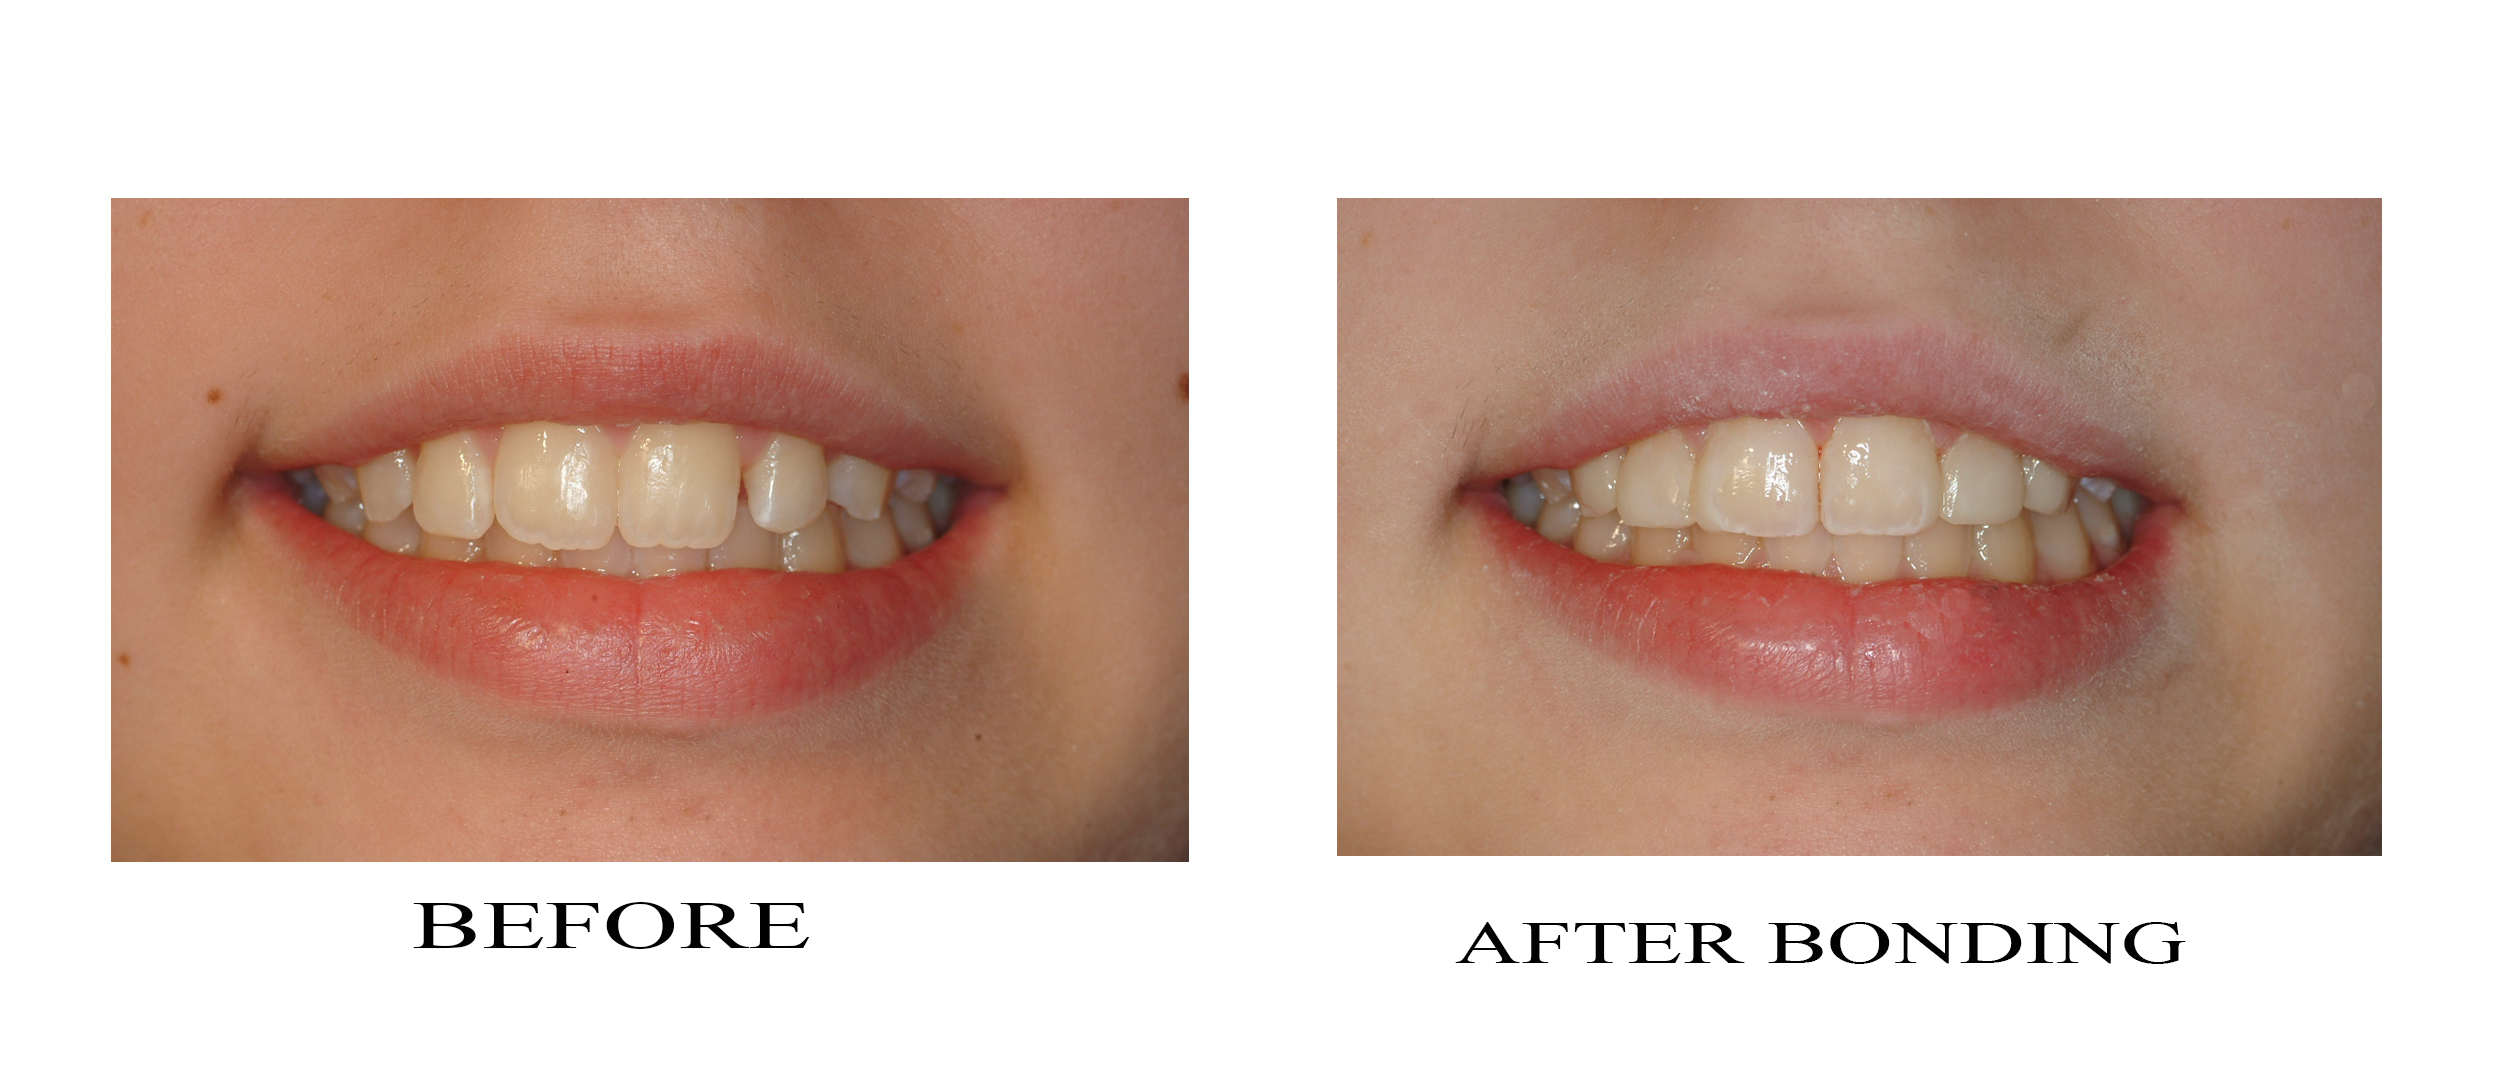 All about Cosmetic Dentistry Bonding